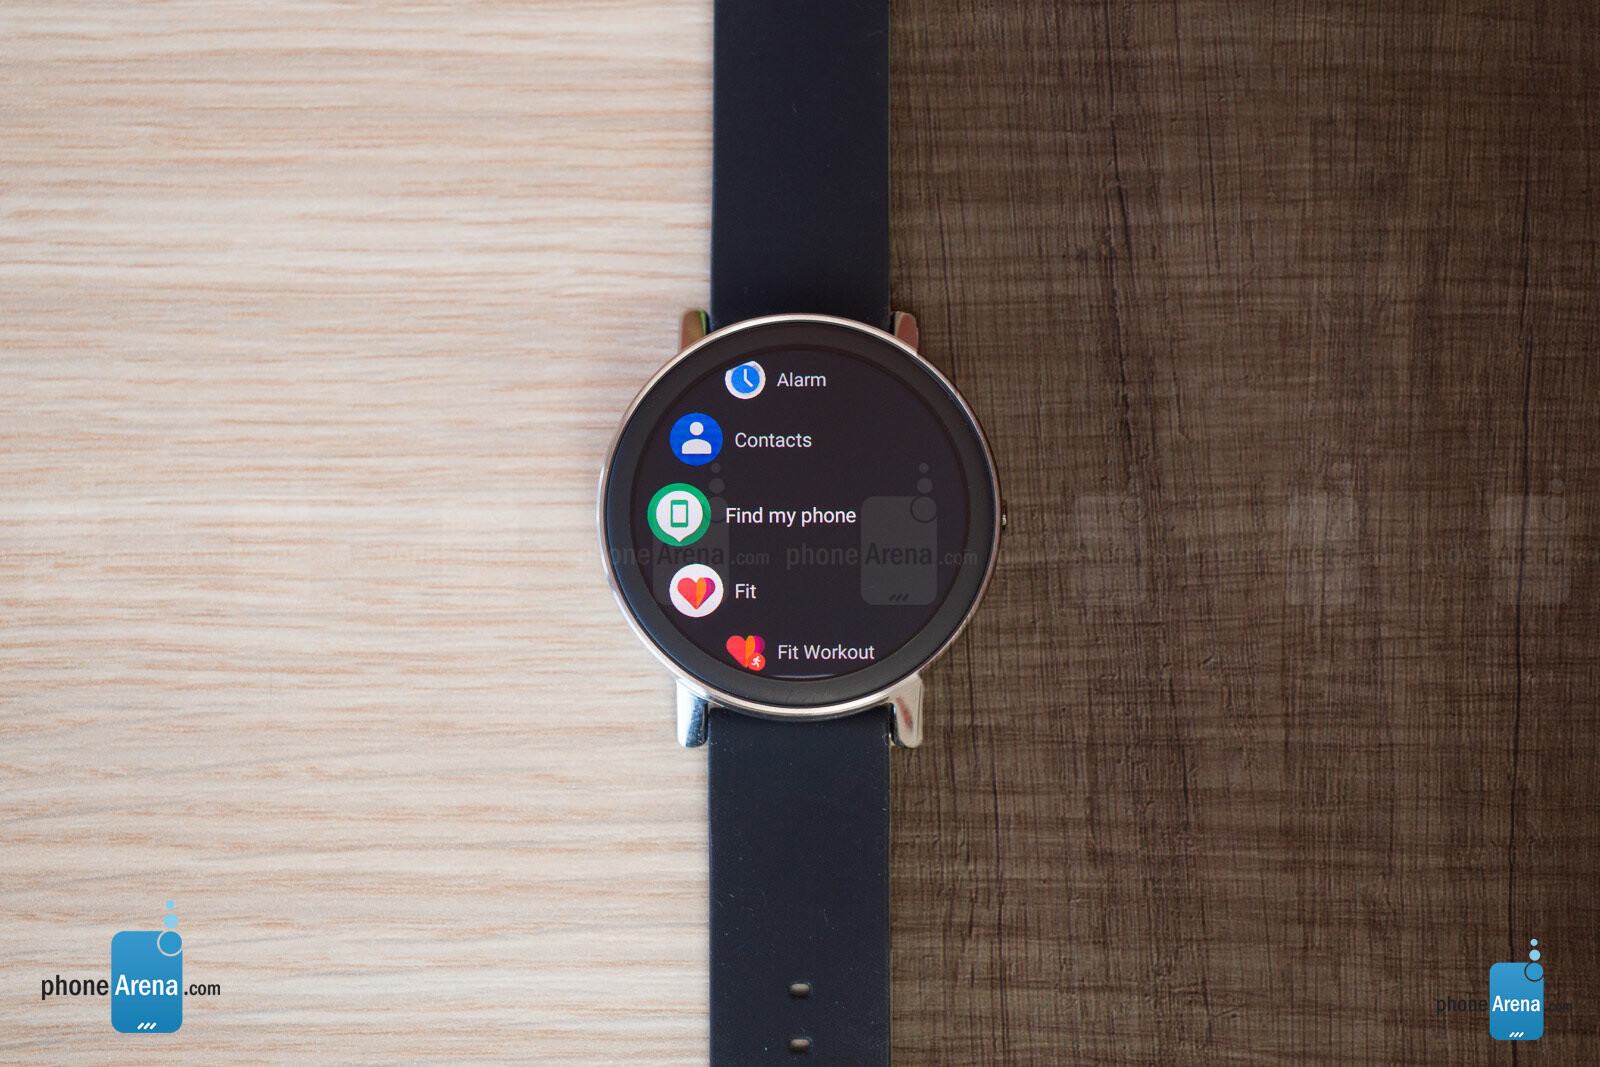 Galaxy Watch vs Pixel Watch: which one will be better